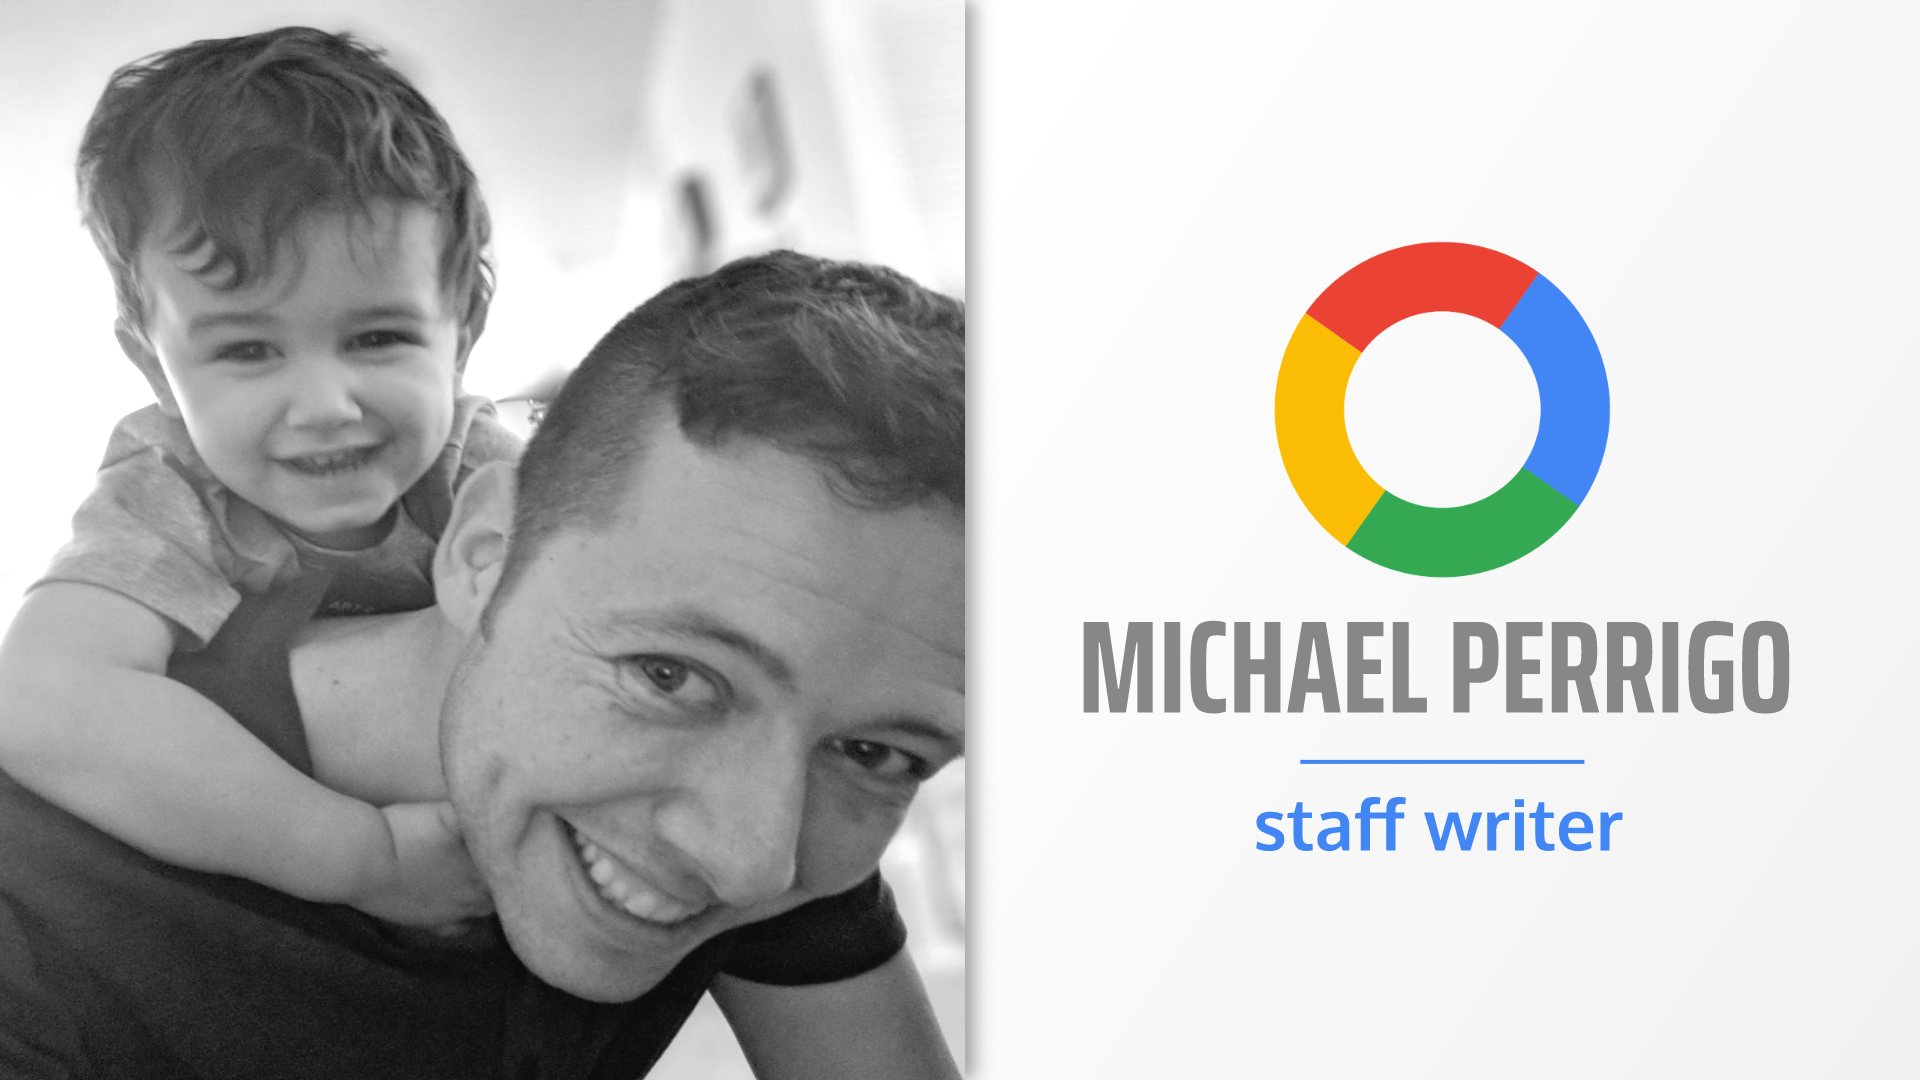 Chrome Unboxed is expanding: meet our new staff writer, Michael Perrigo